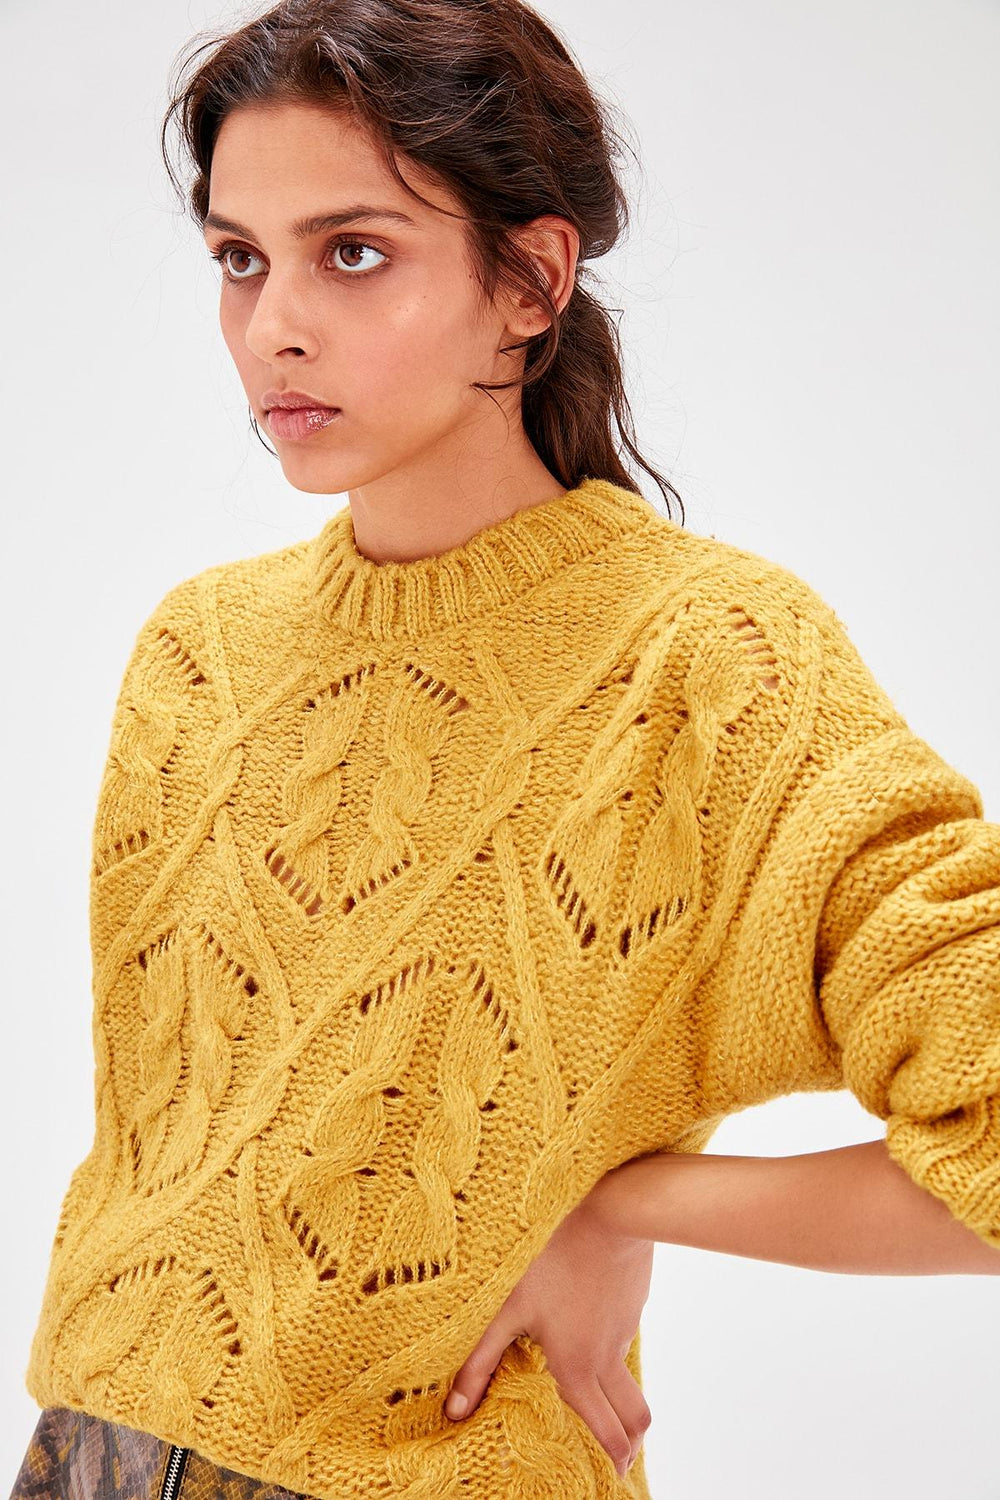 Yellow Hair Braided Knitwear Sweater - Top Maxy